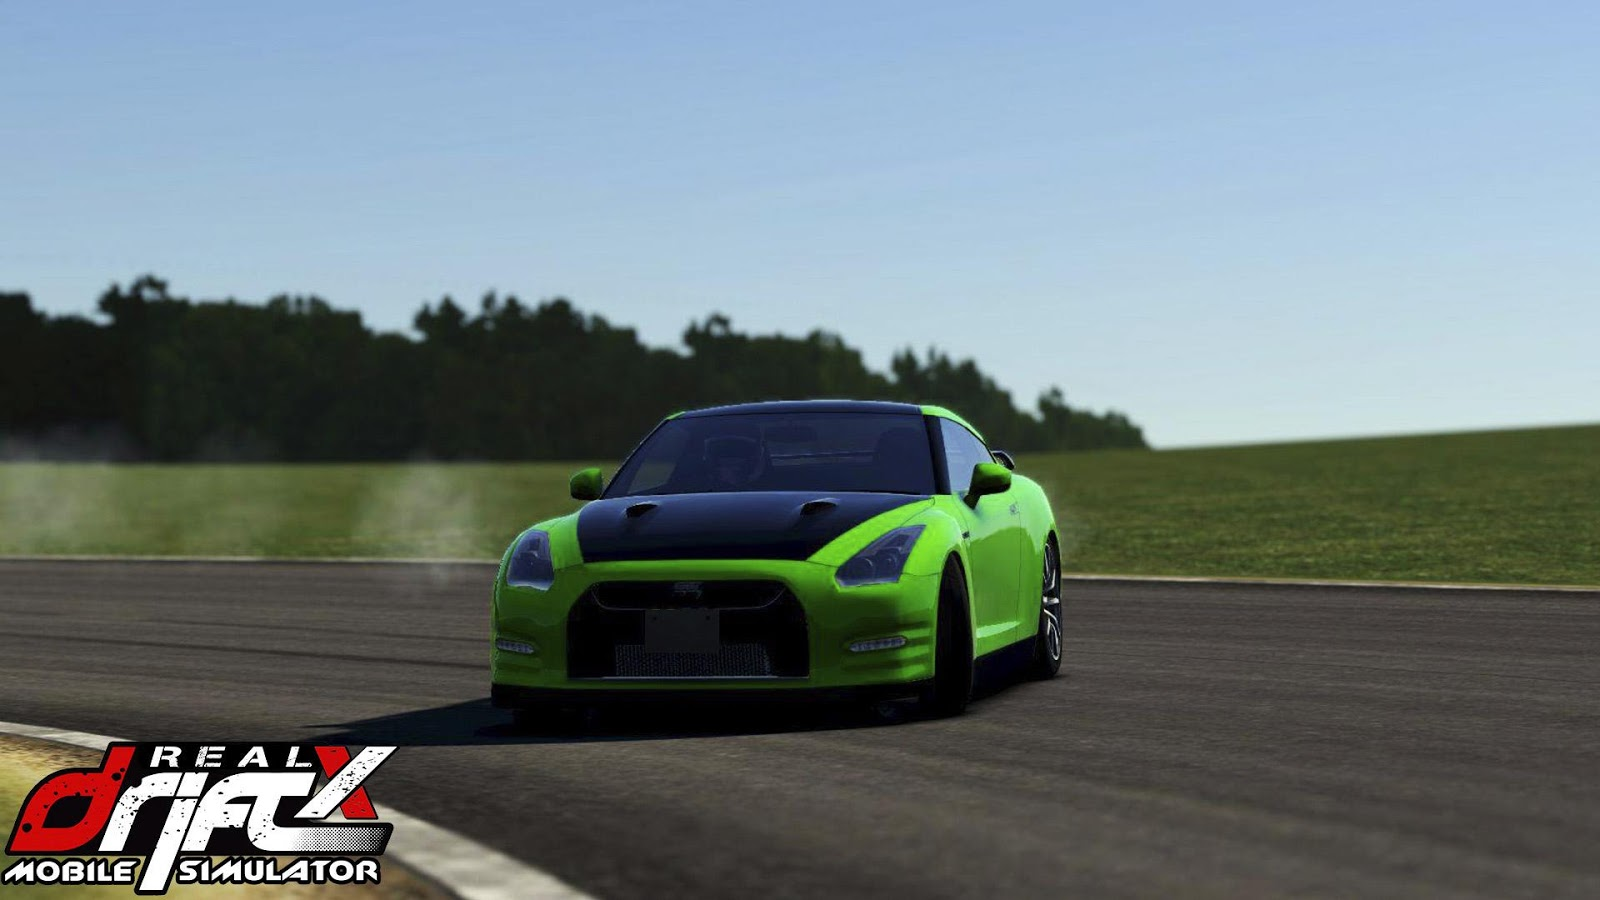 Real Drift X Car Racing Screenshot 16